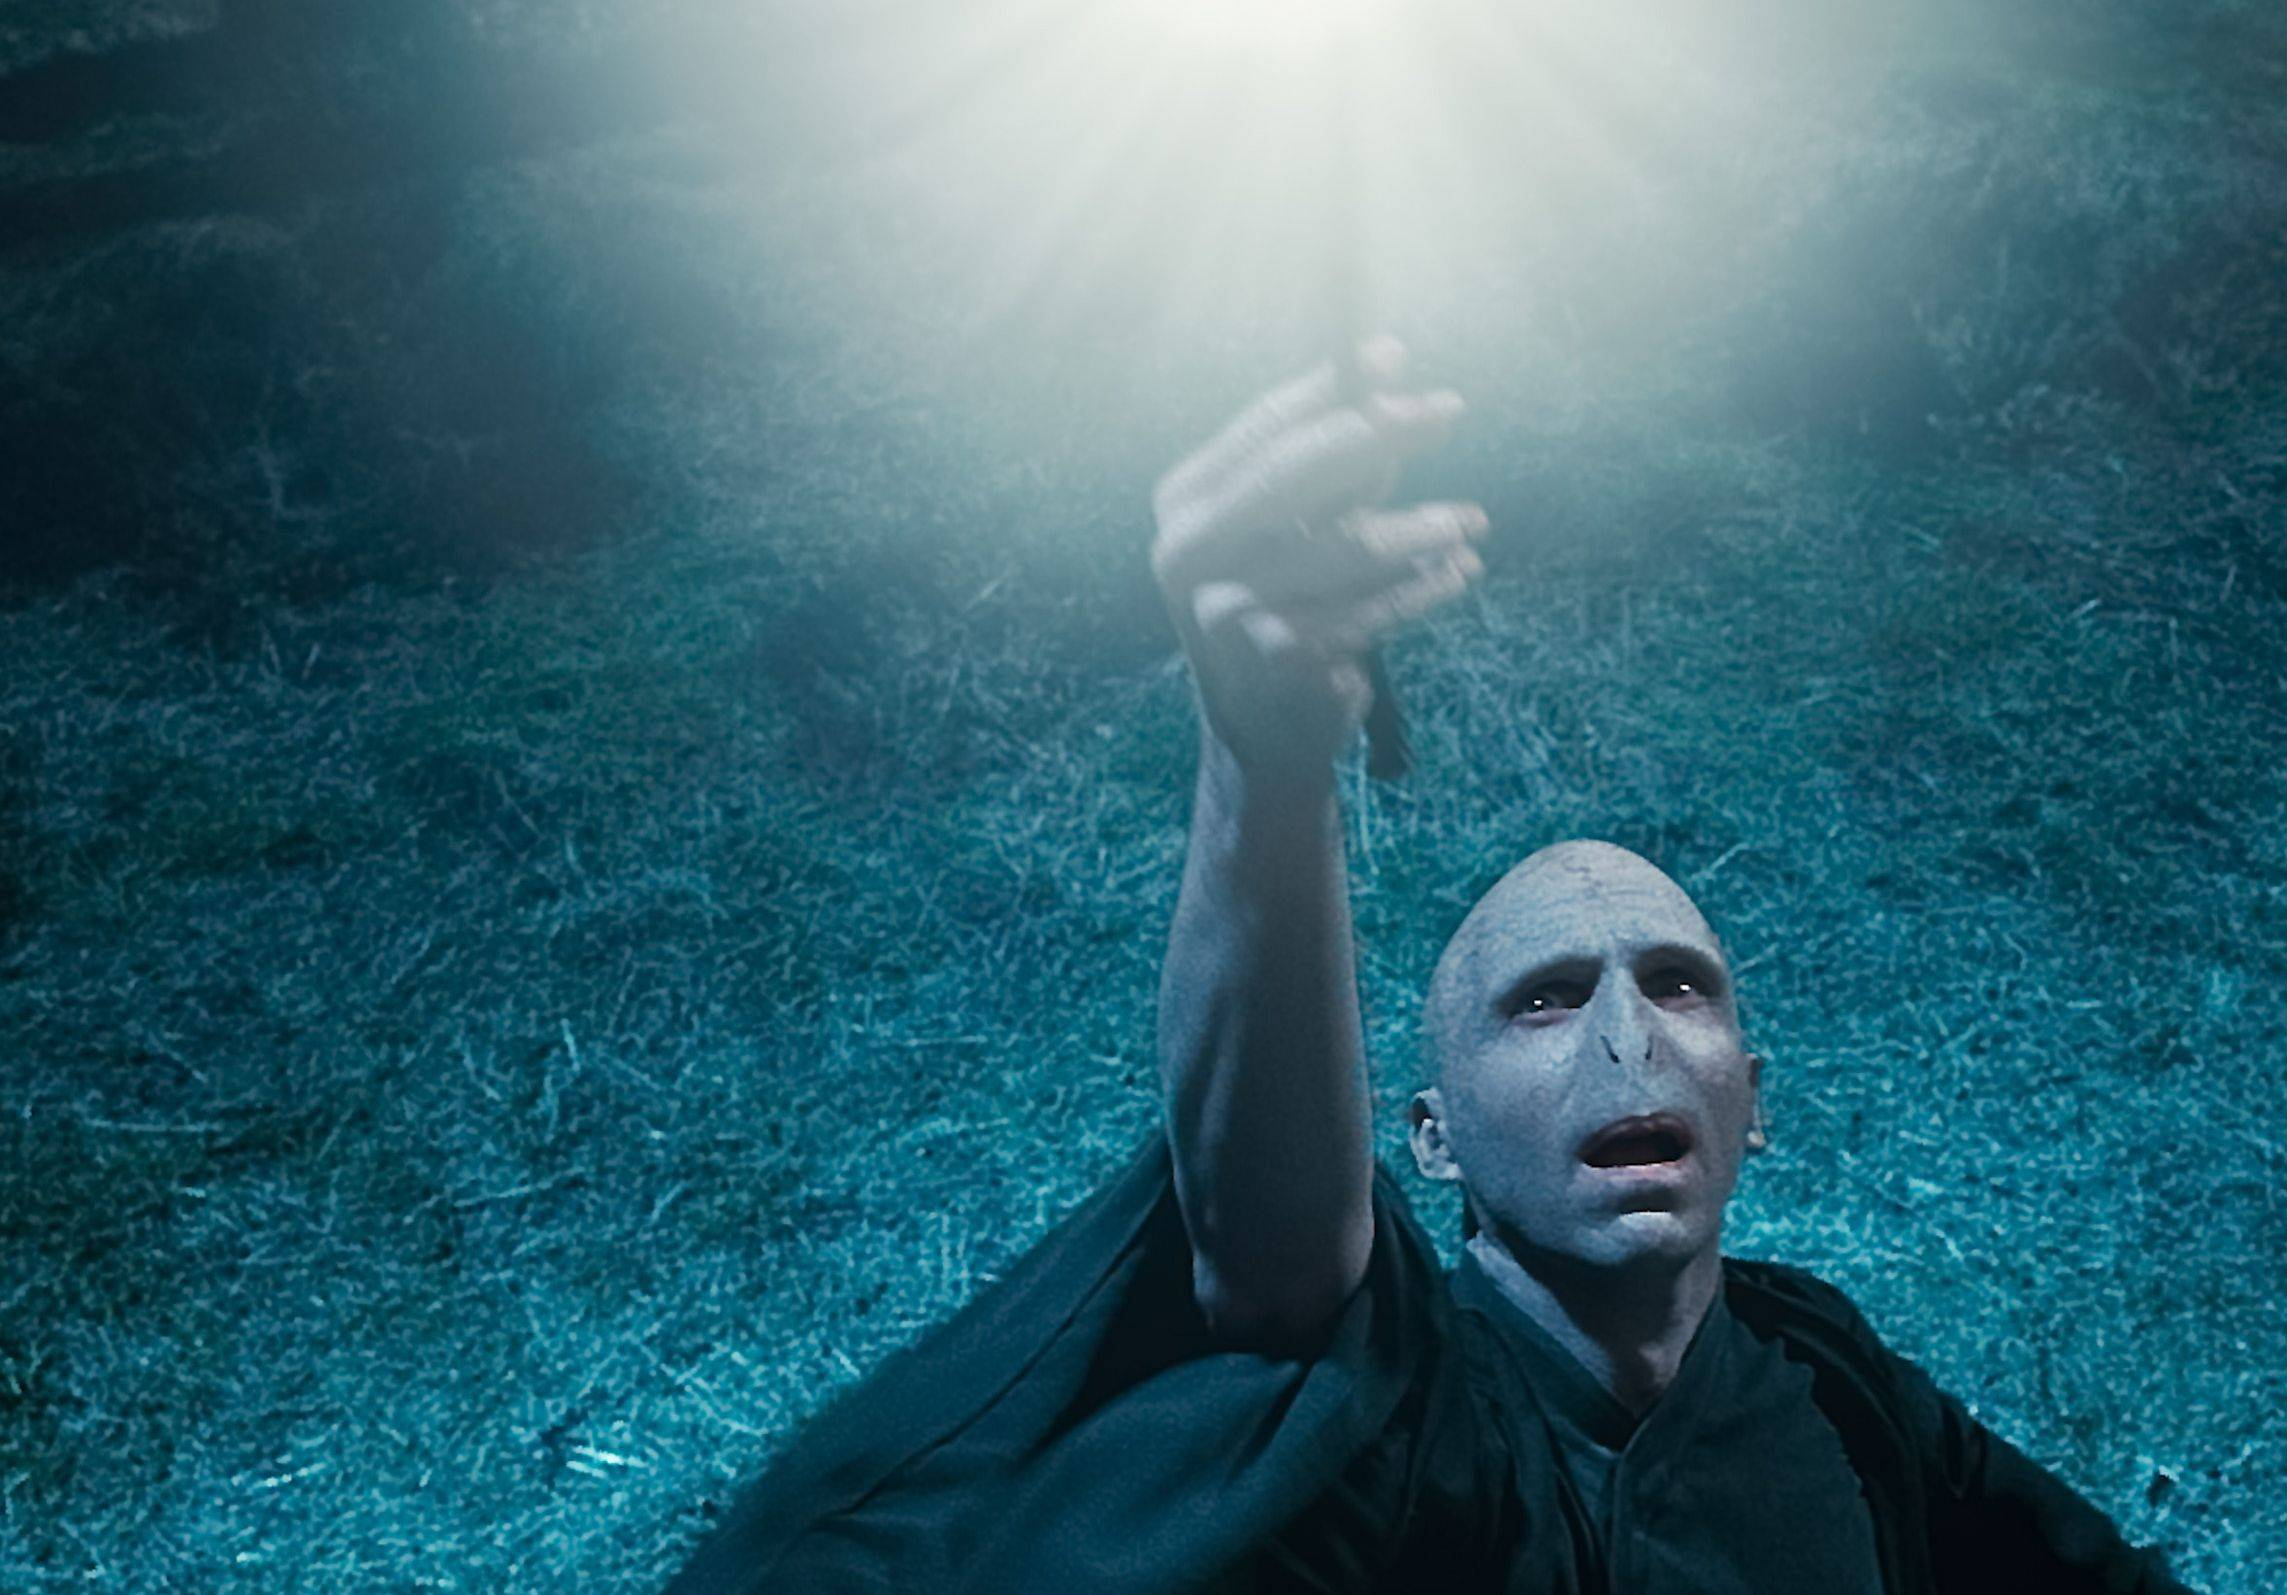 What other roles have made the actor behind Voldemort famous?